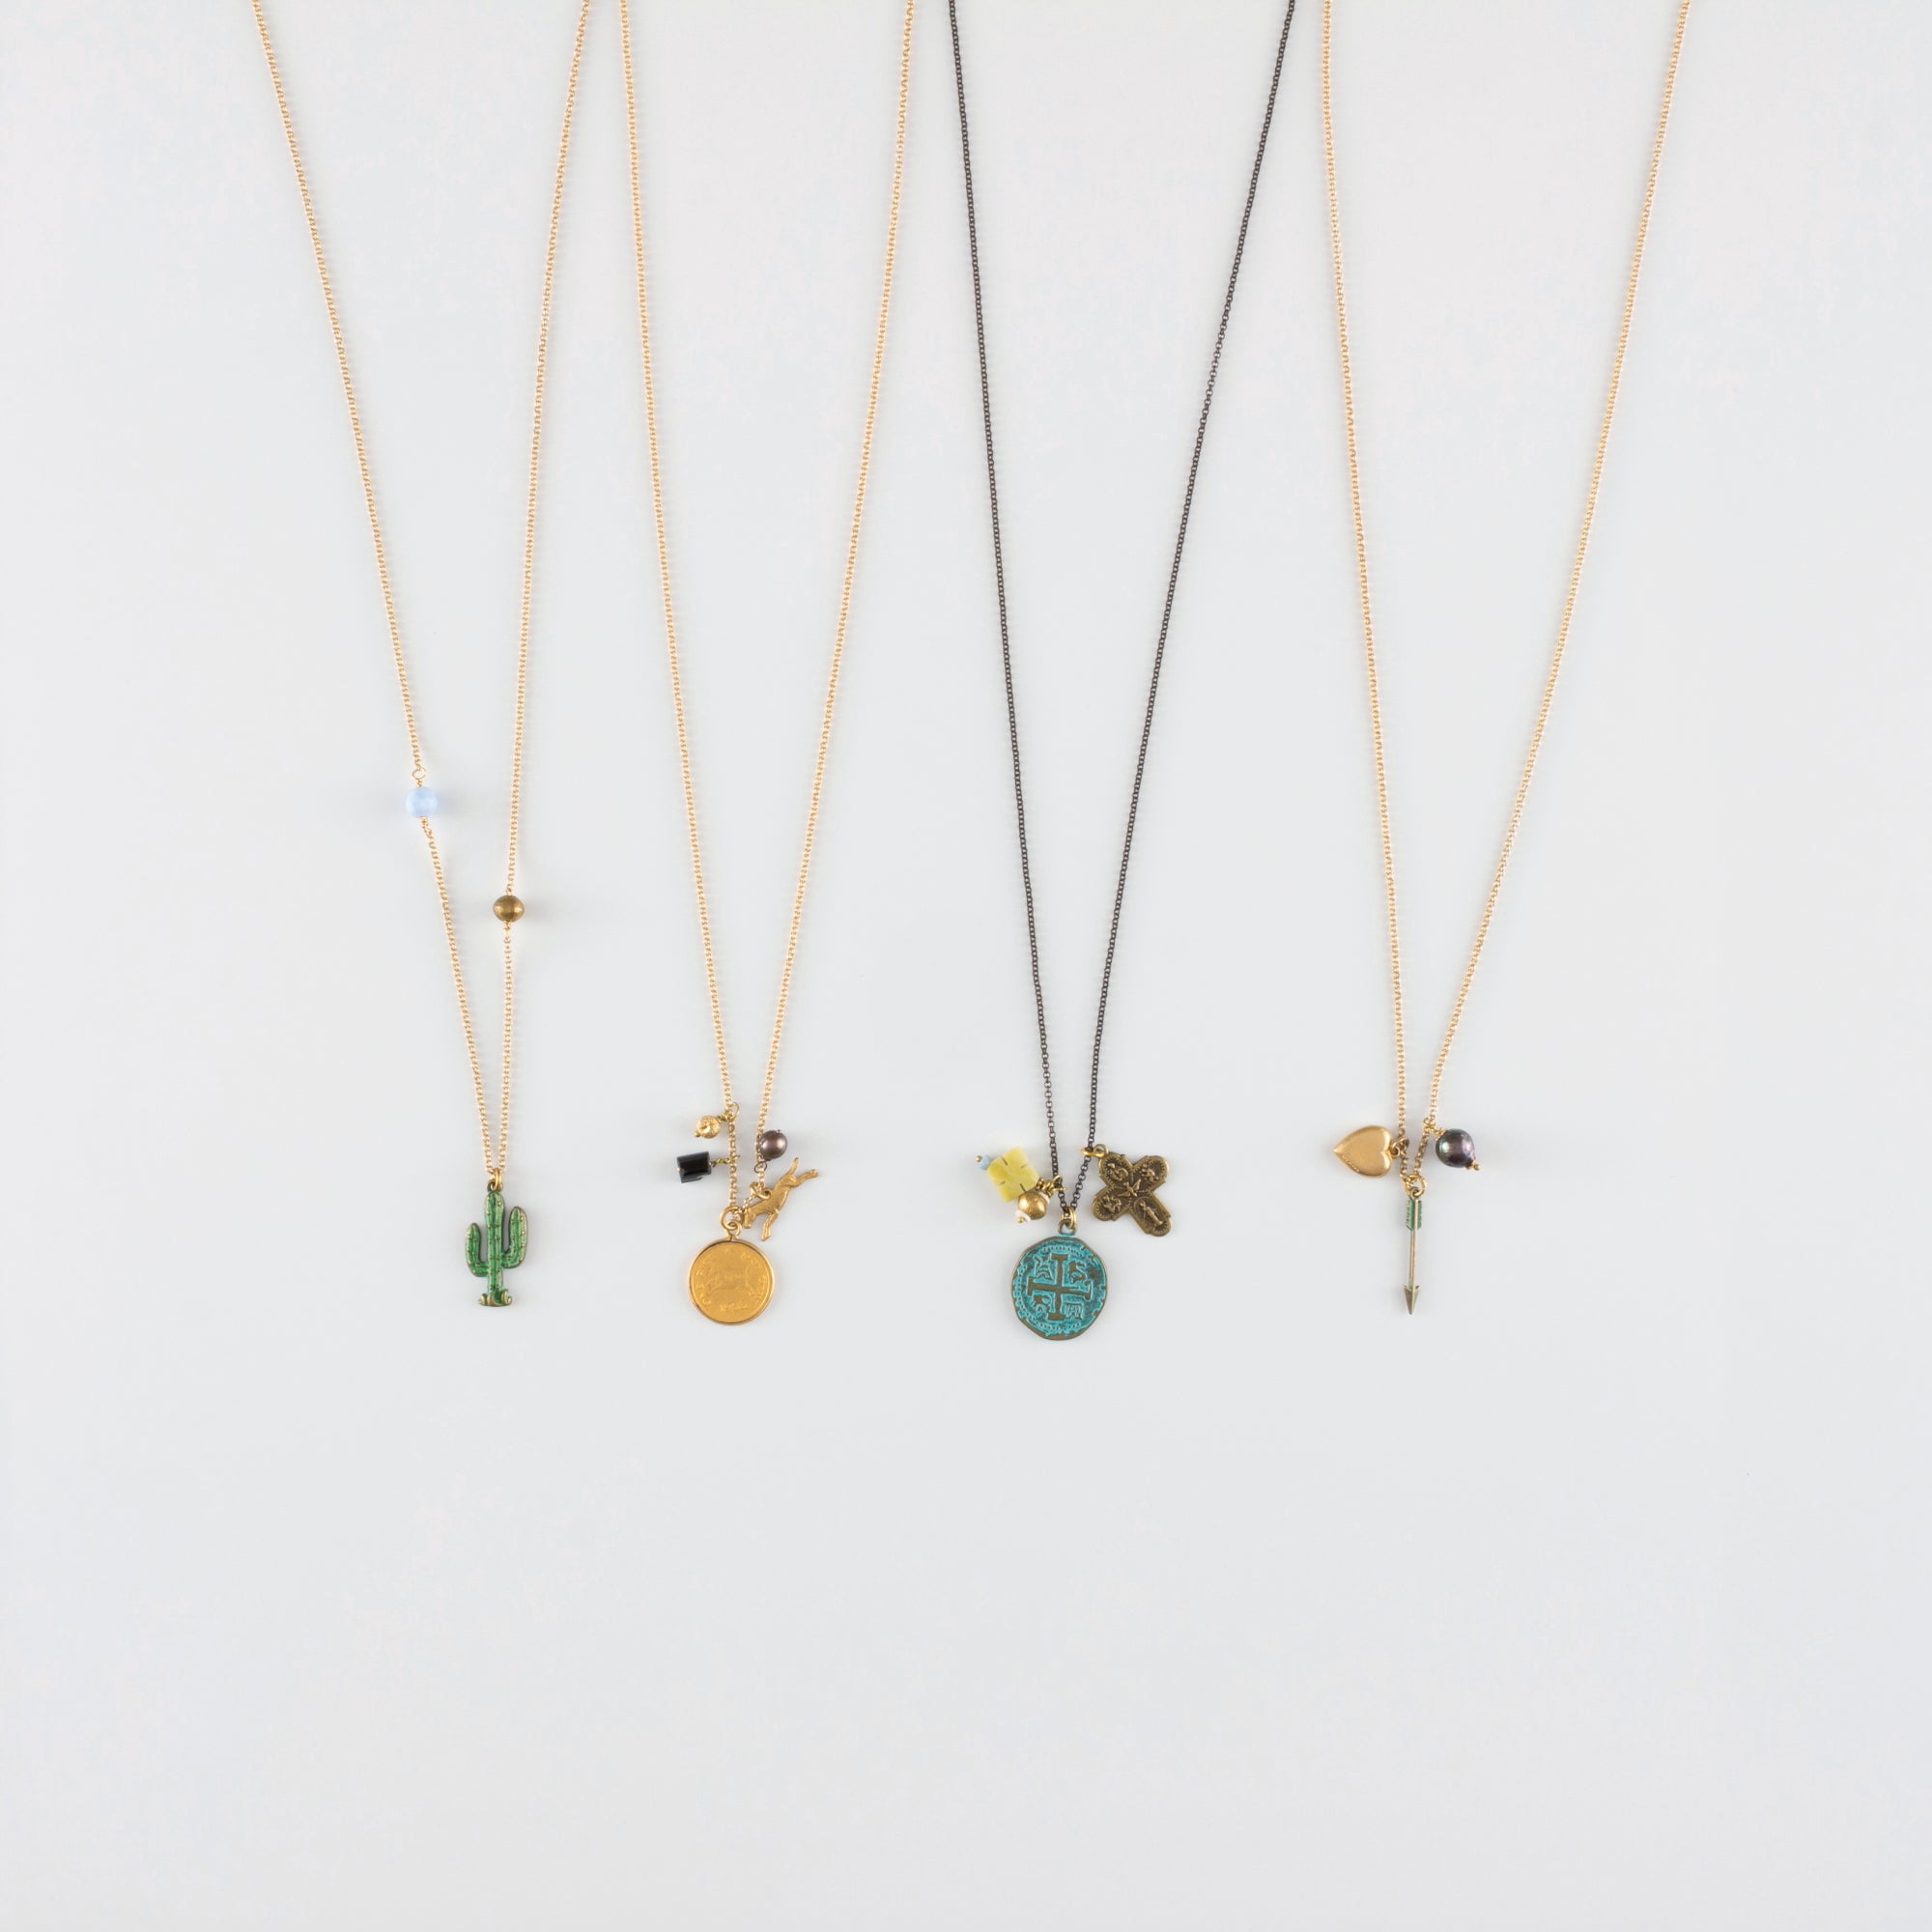 GREAT SUCCESS NECKLACE // PONY UP